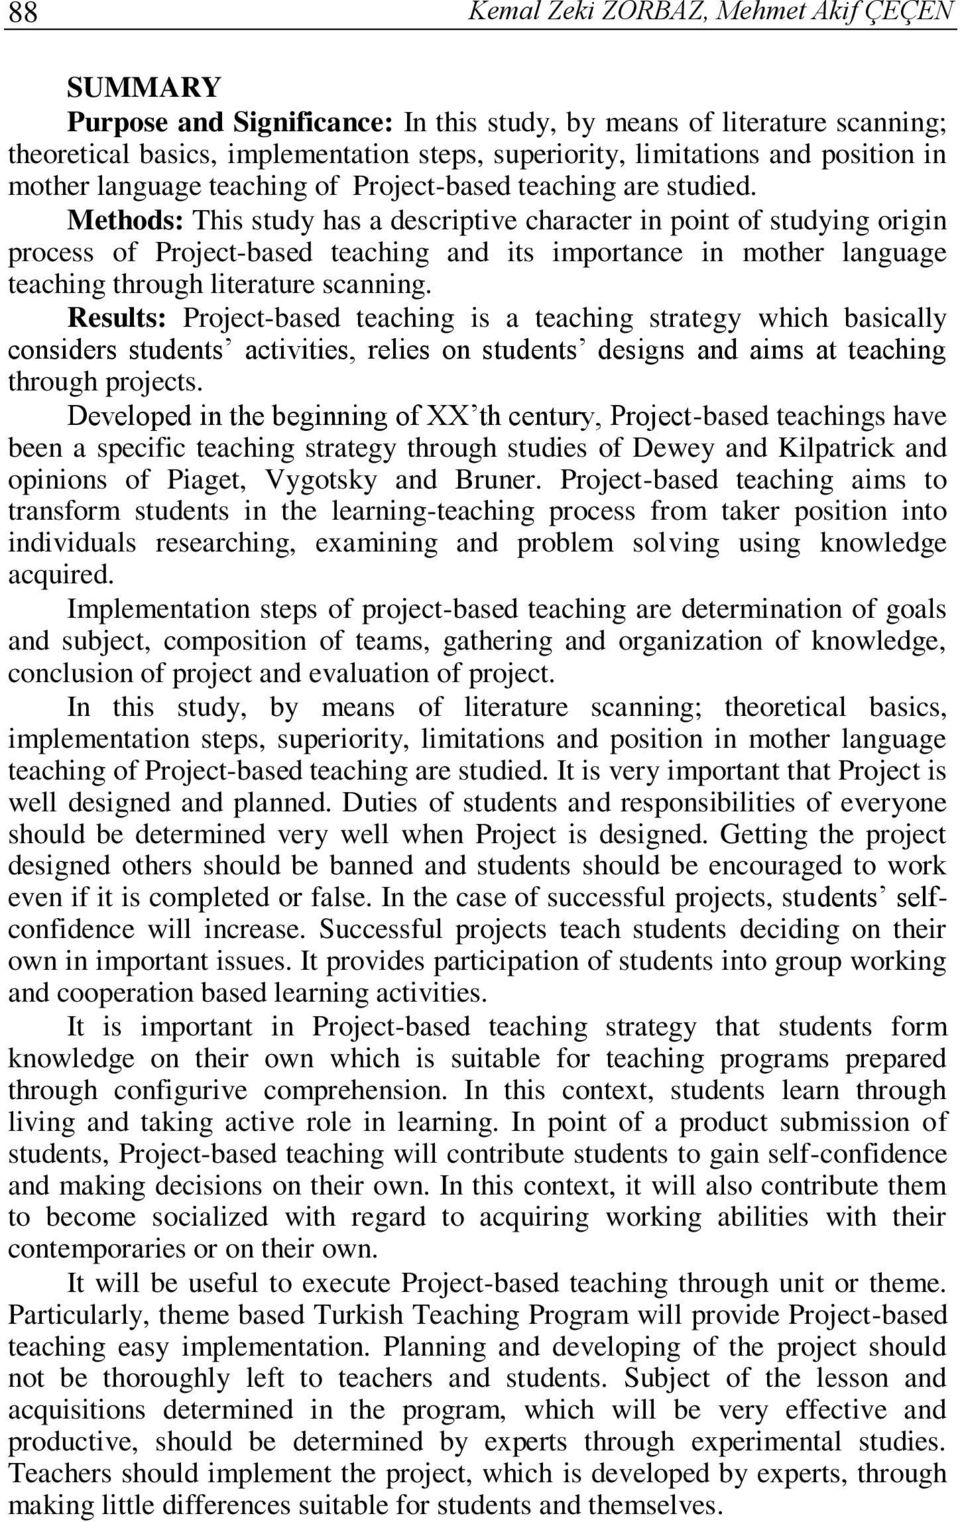 Methods: This study has a descriptive character in point of studying origin process of Project-based teaching and its importance in mother language teaching through literature scanning.